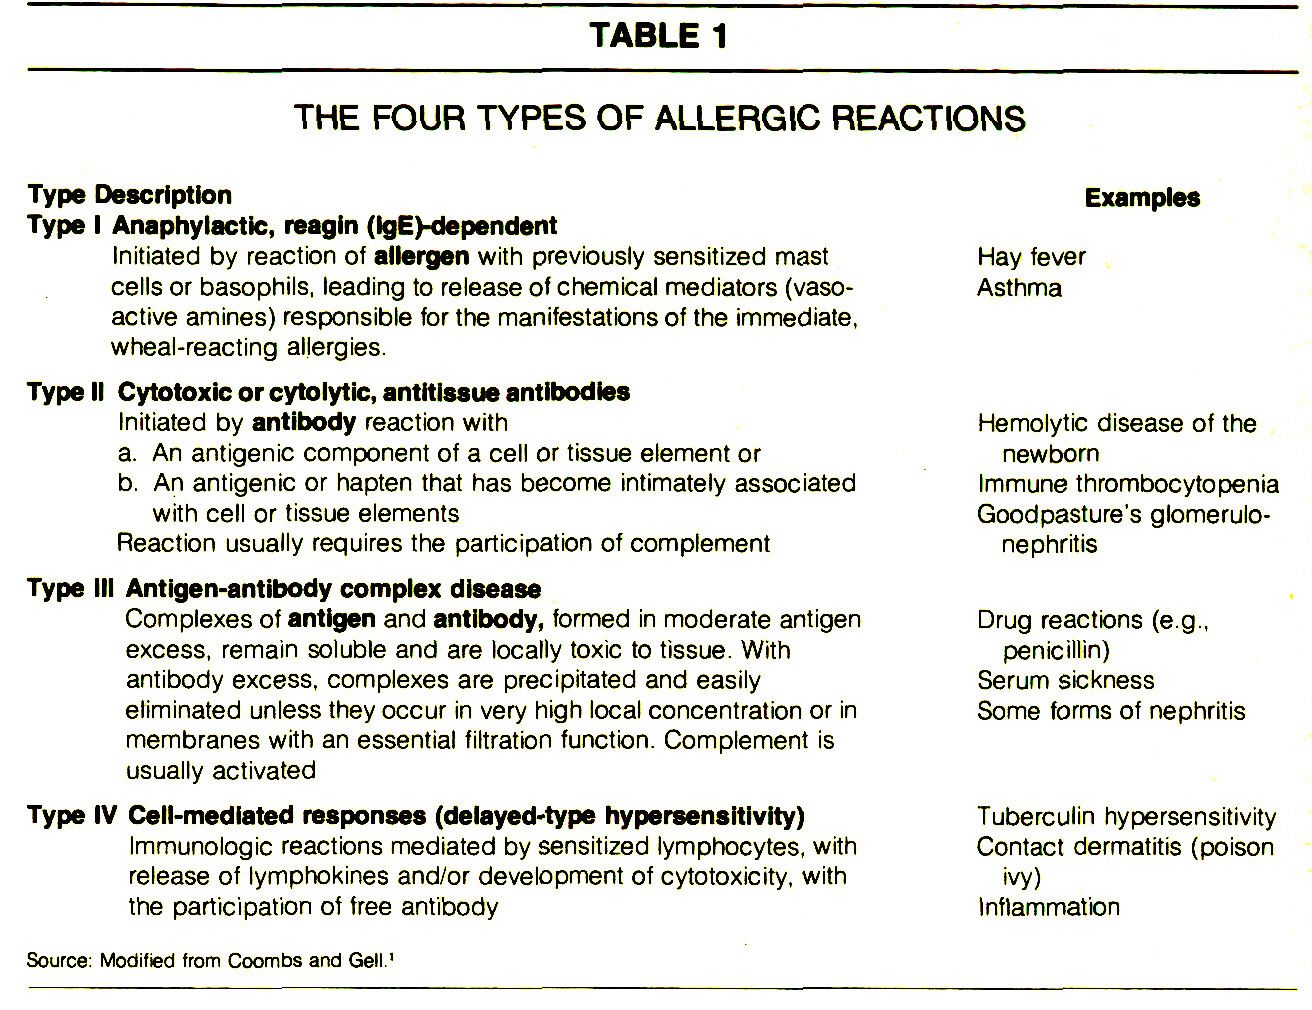 TABLE 1THE FOUR TYPES OF ALLERGIC REACTIONS